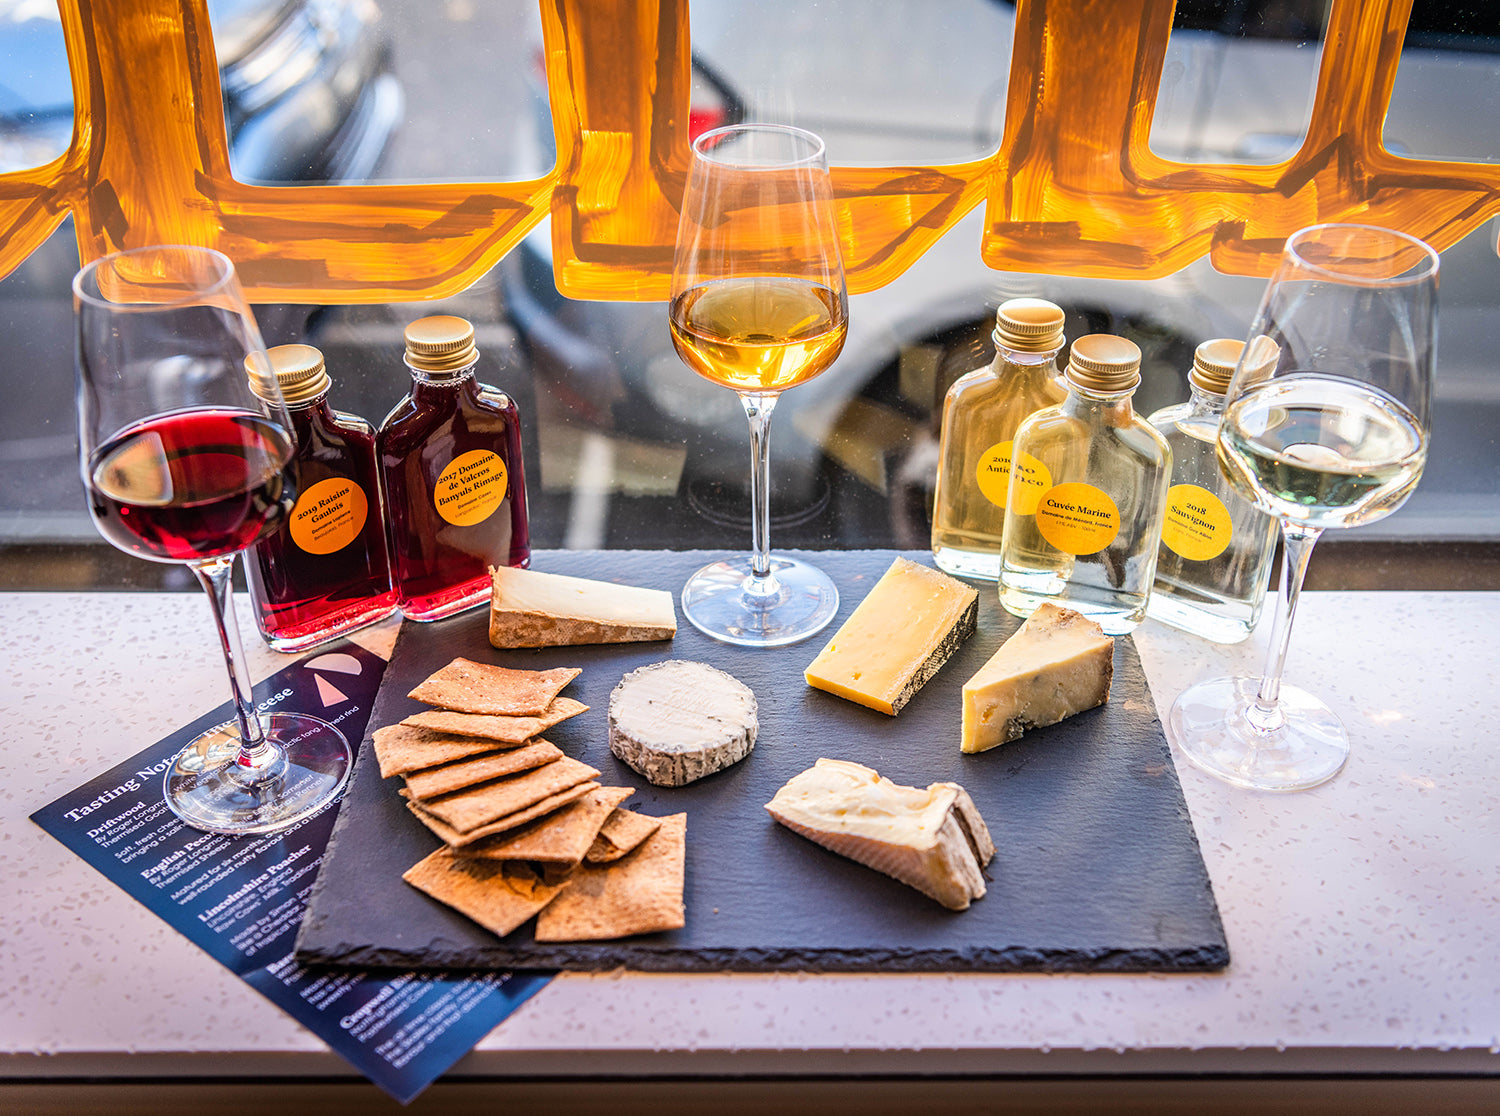 Virtual Cheese & Wine Tasting - Weds 9th Dec - 7.30pm